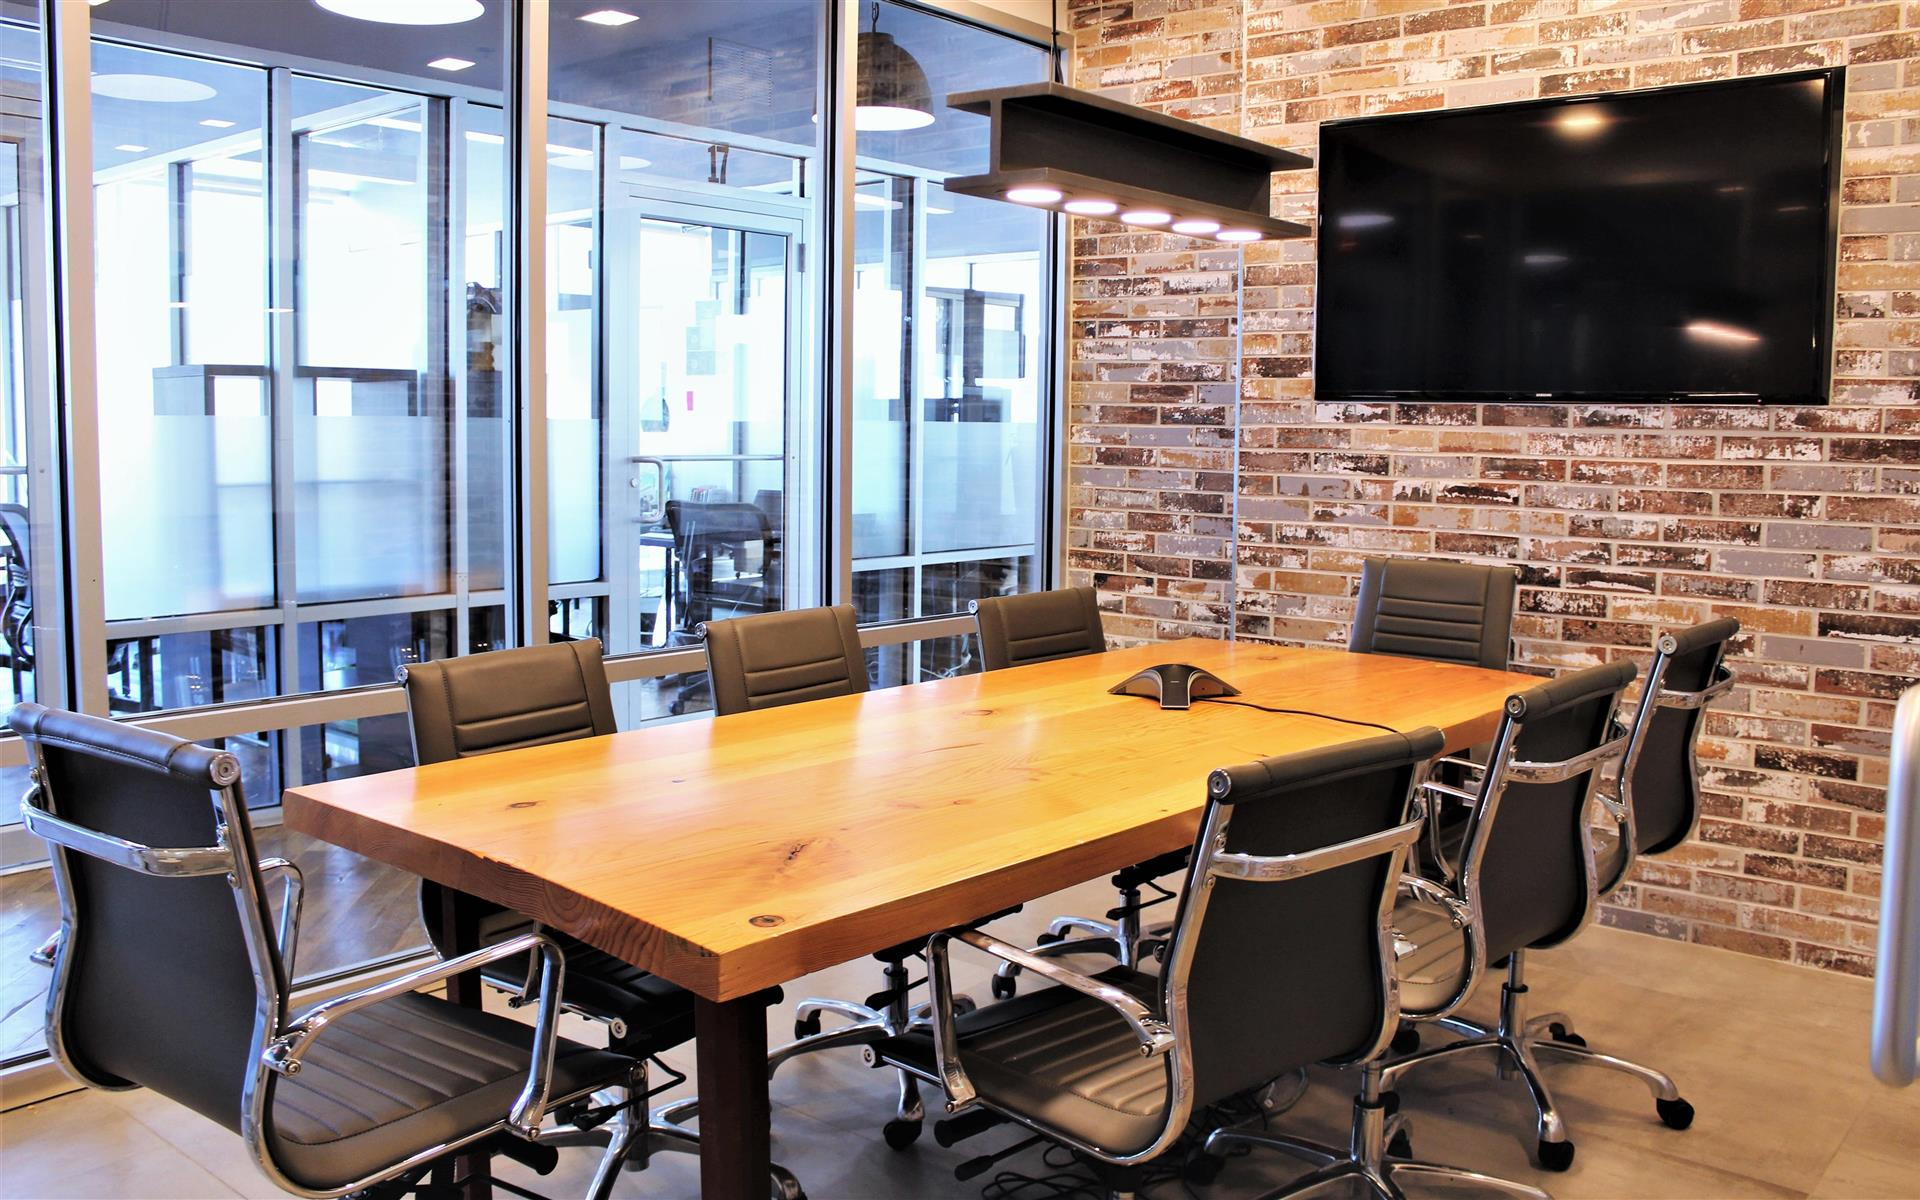 Green Desk - 34-18 Northern Blvd, LIC - Conference Room N - 34-18 Northern Blvd